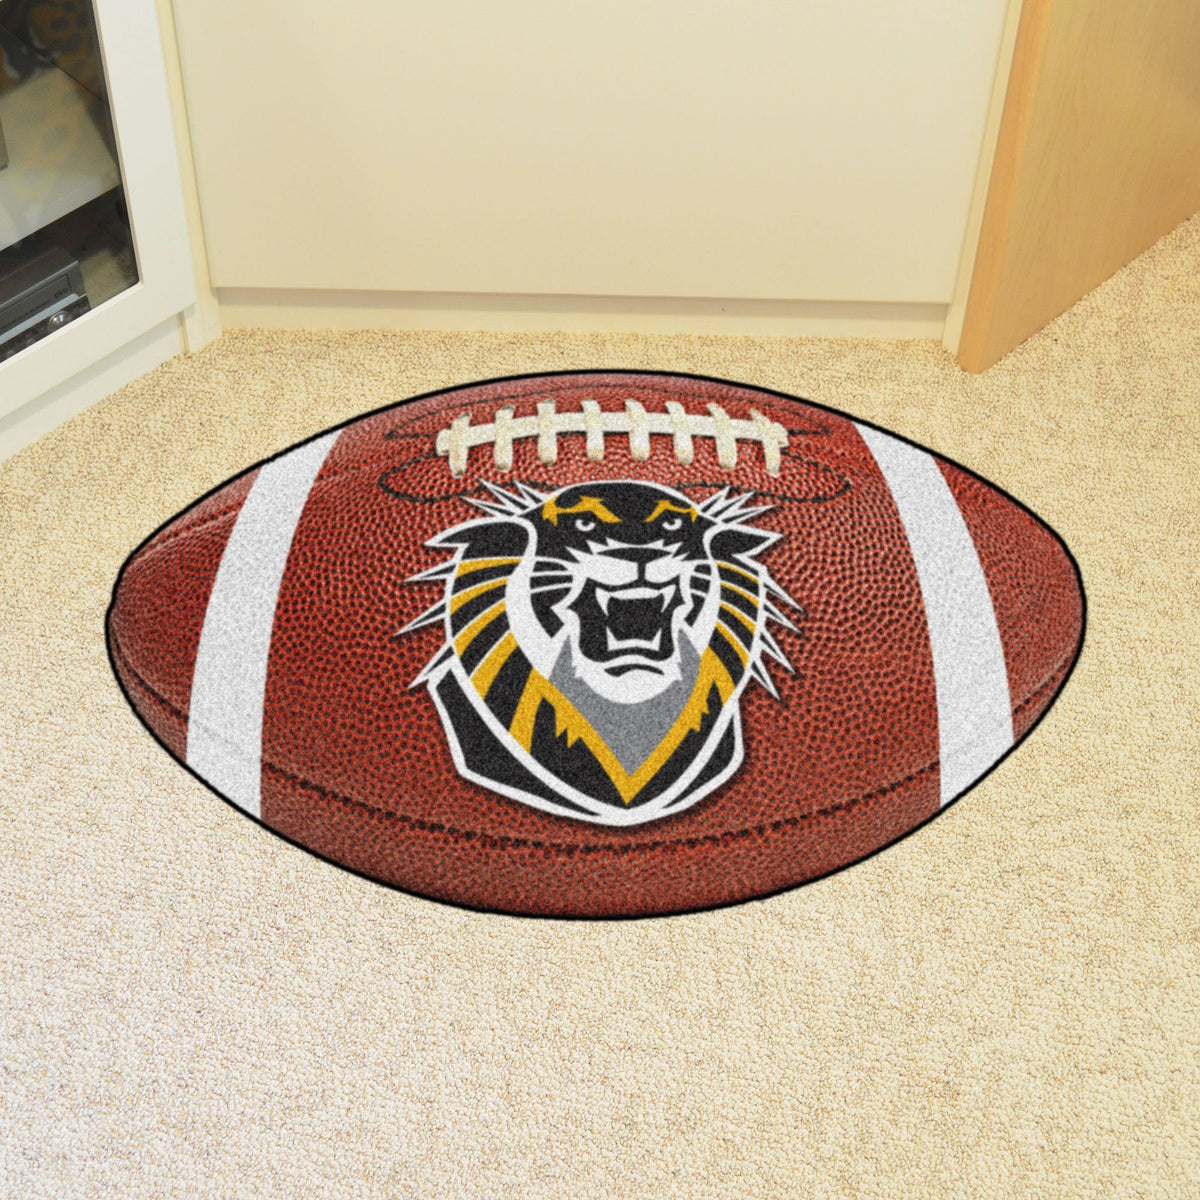 Collegiate - Football Mat: A - K Collegiate Mats, Rectangular Mats, Football Mat, Collegiate, Home Fan Mats Fort Hays State